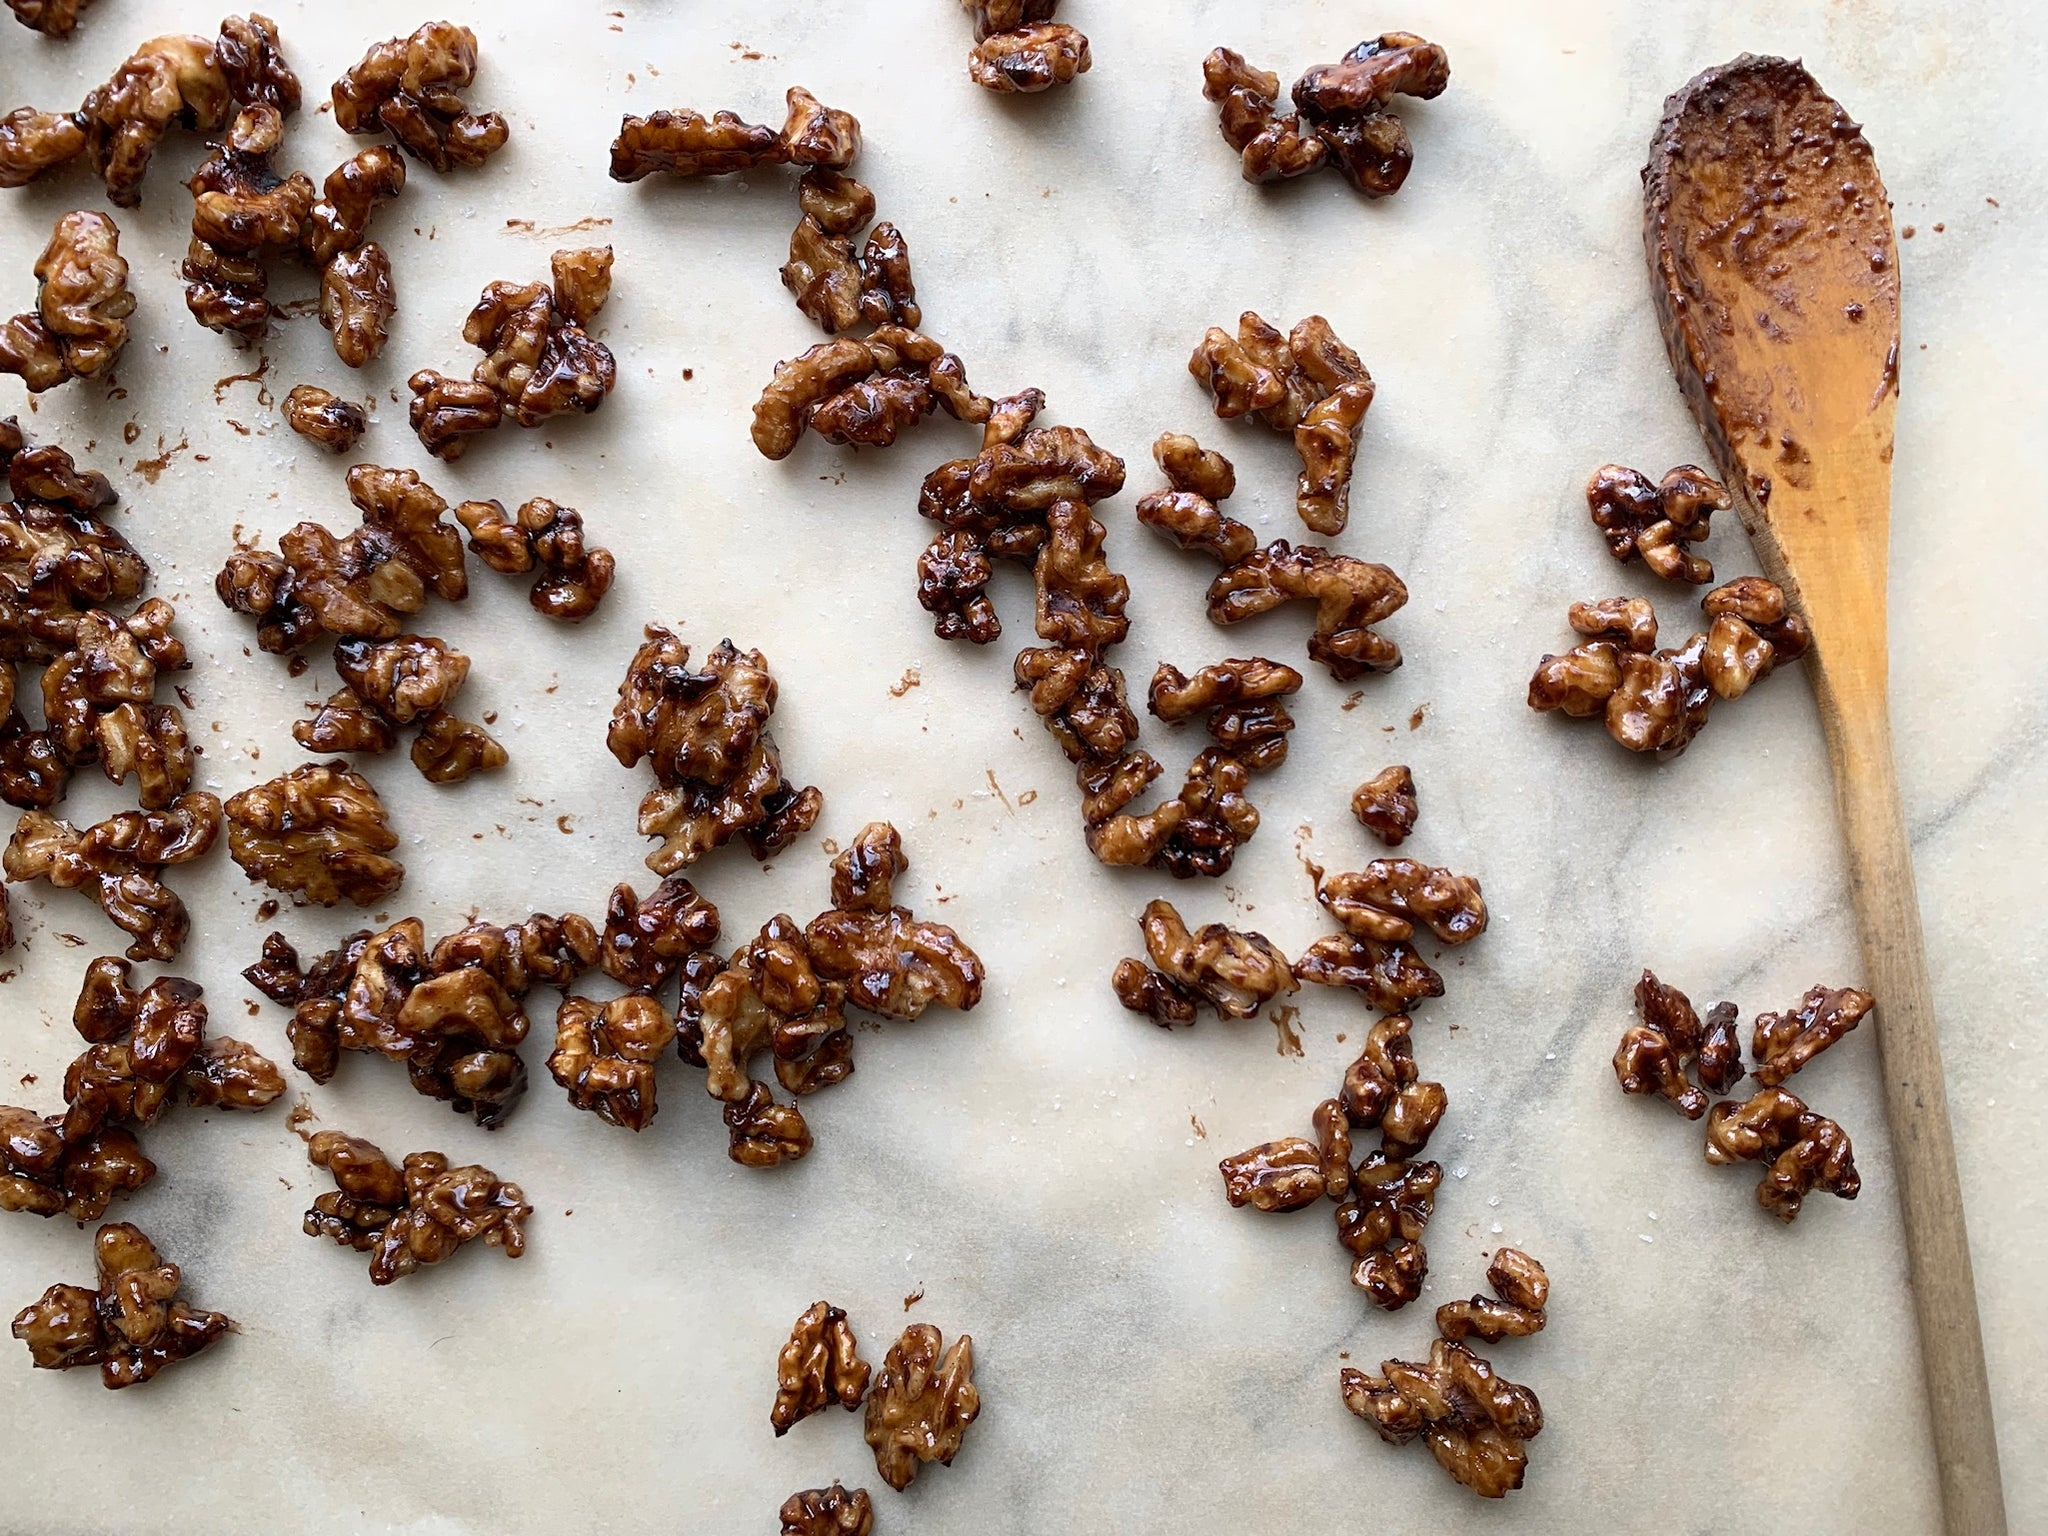 Loco Cocoa Candied Walnuts